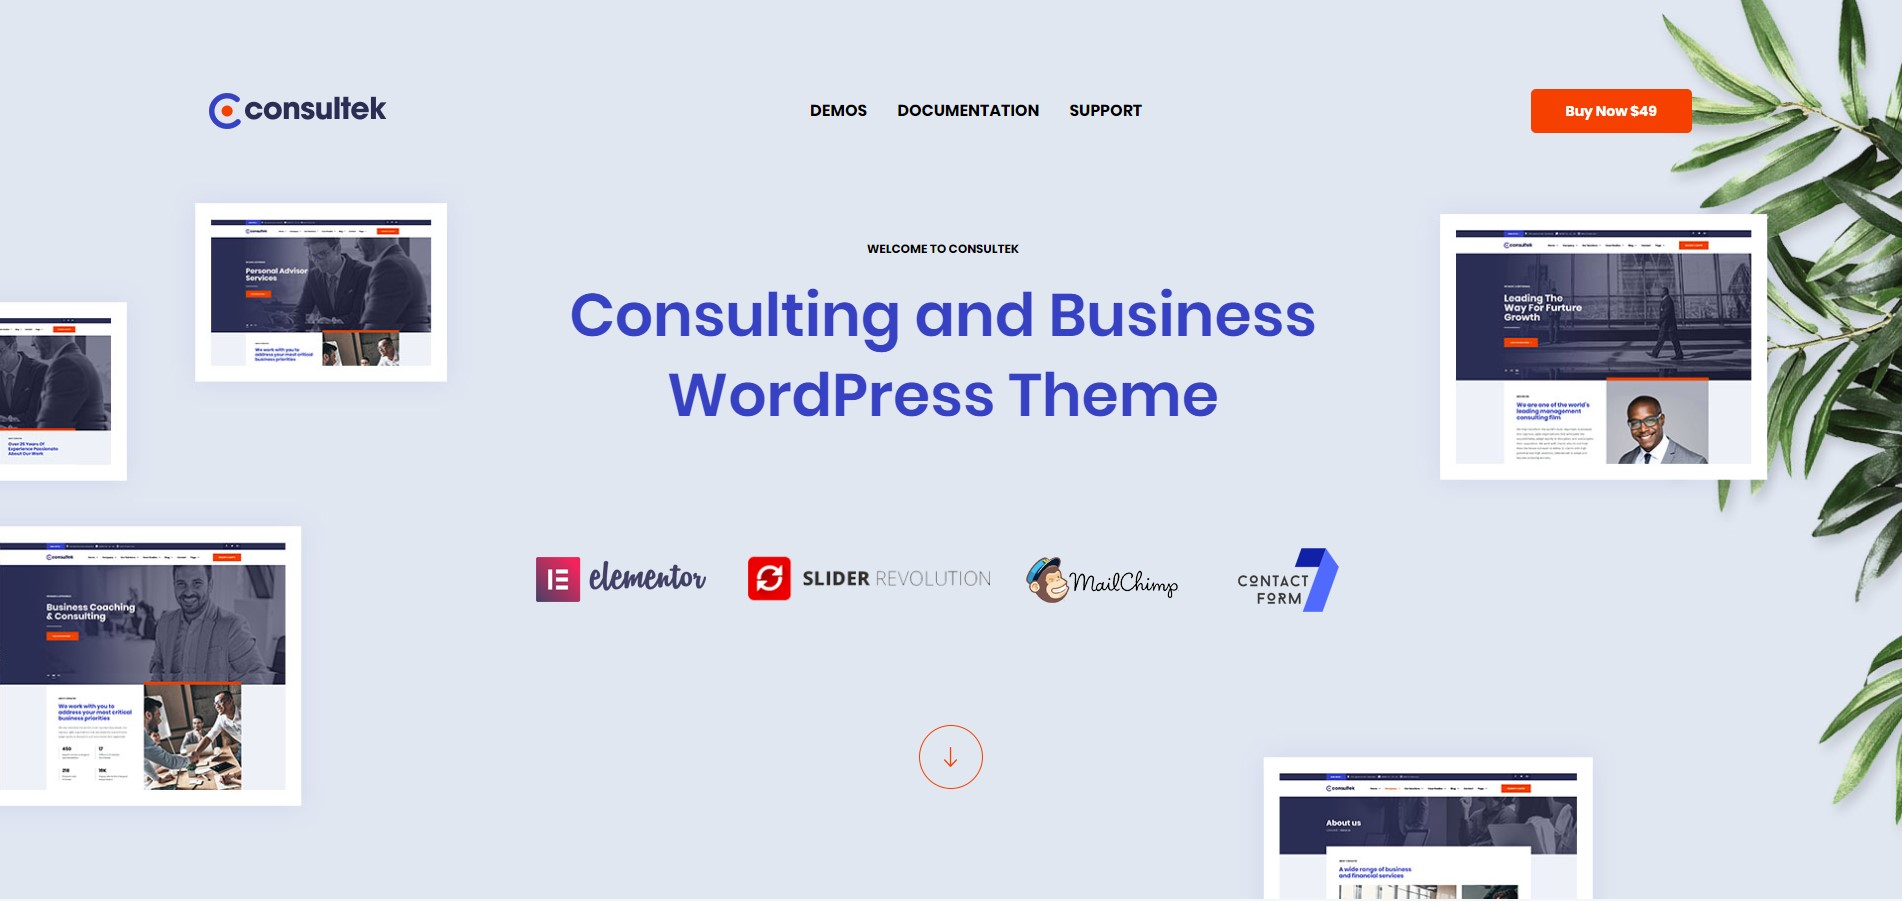 Consultek - Consulting Business WordPress Theme